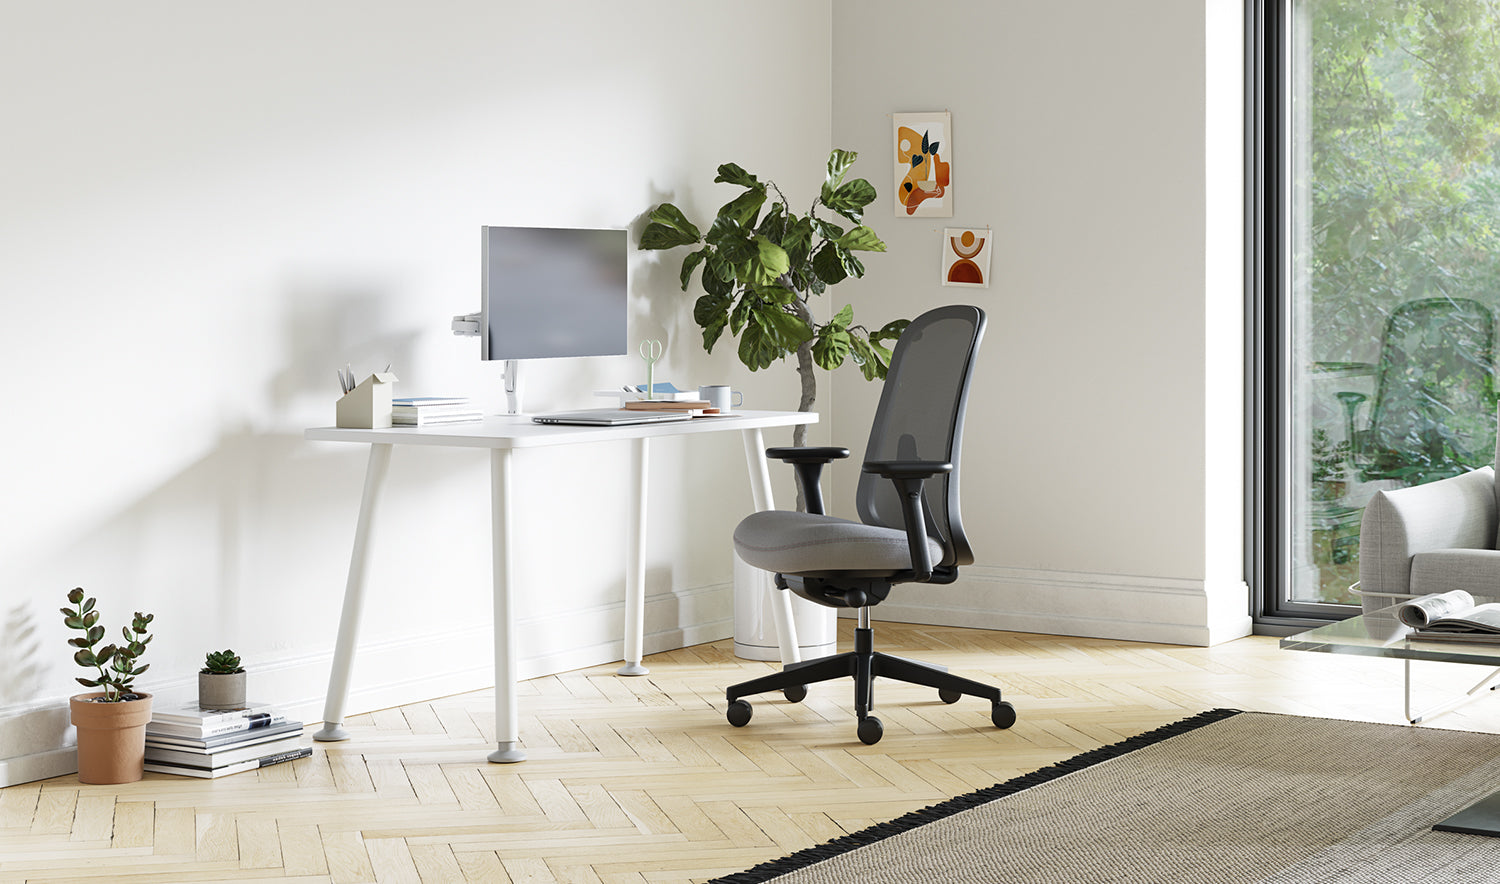 Grey lino chair in a home office alongside a white Memo desk